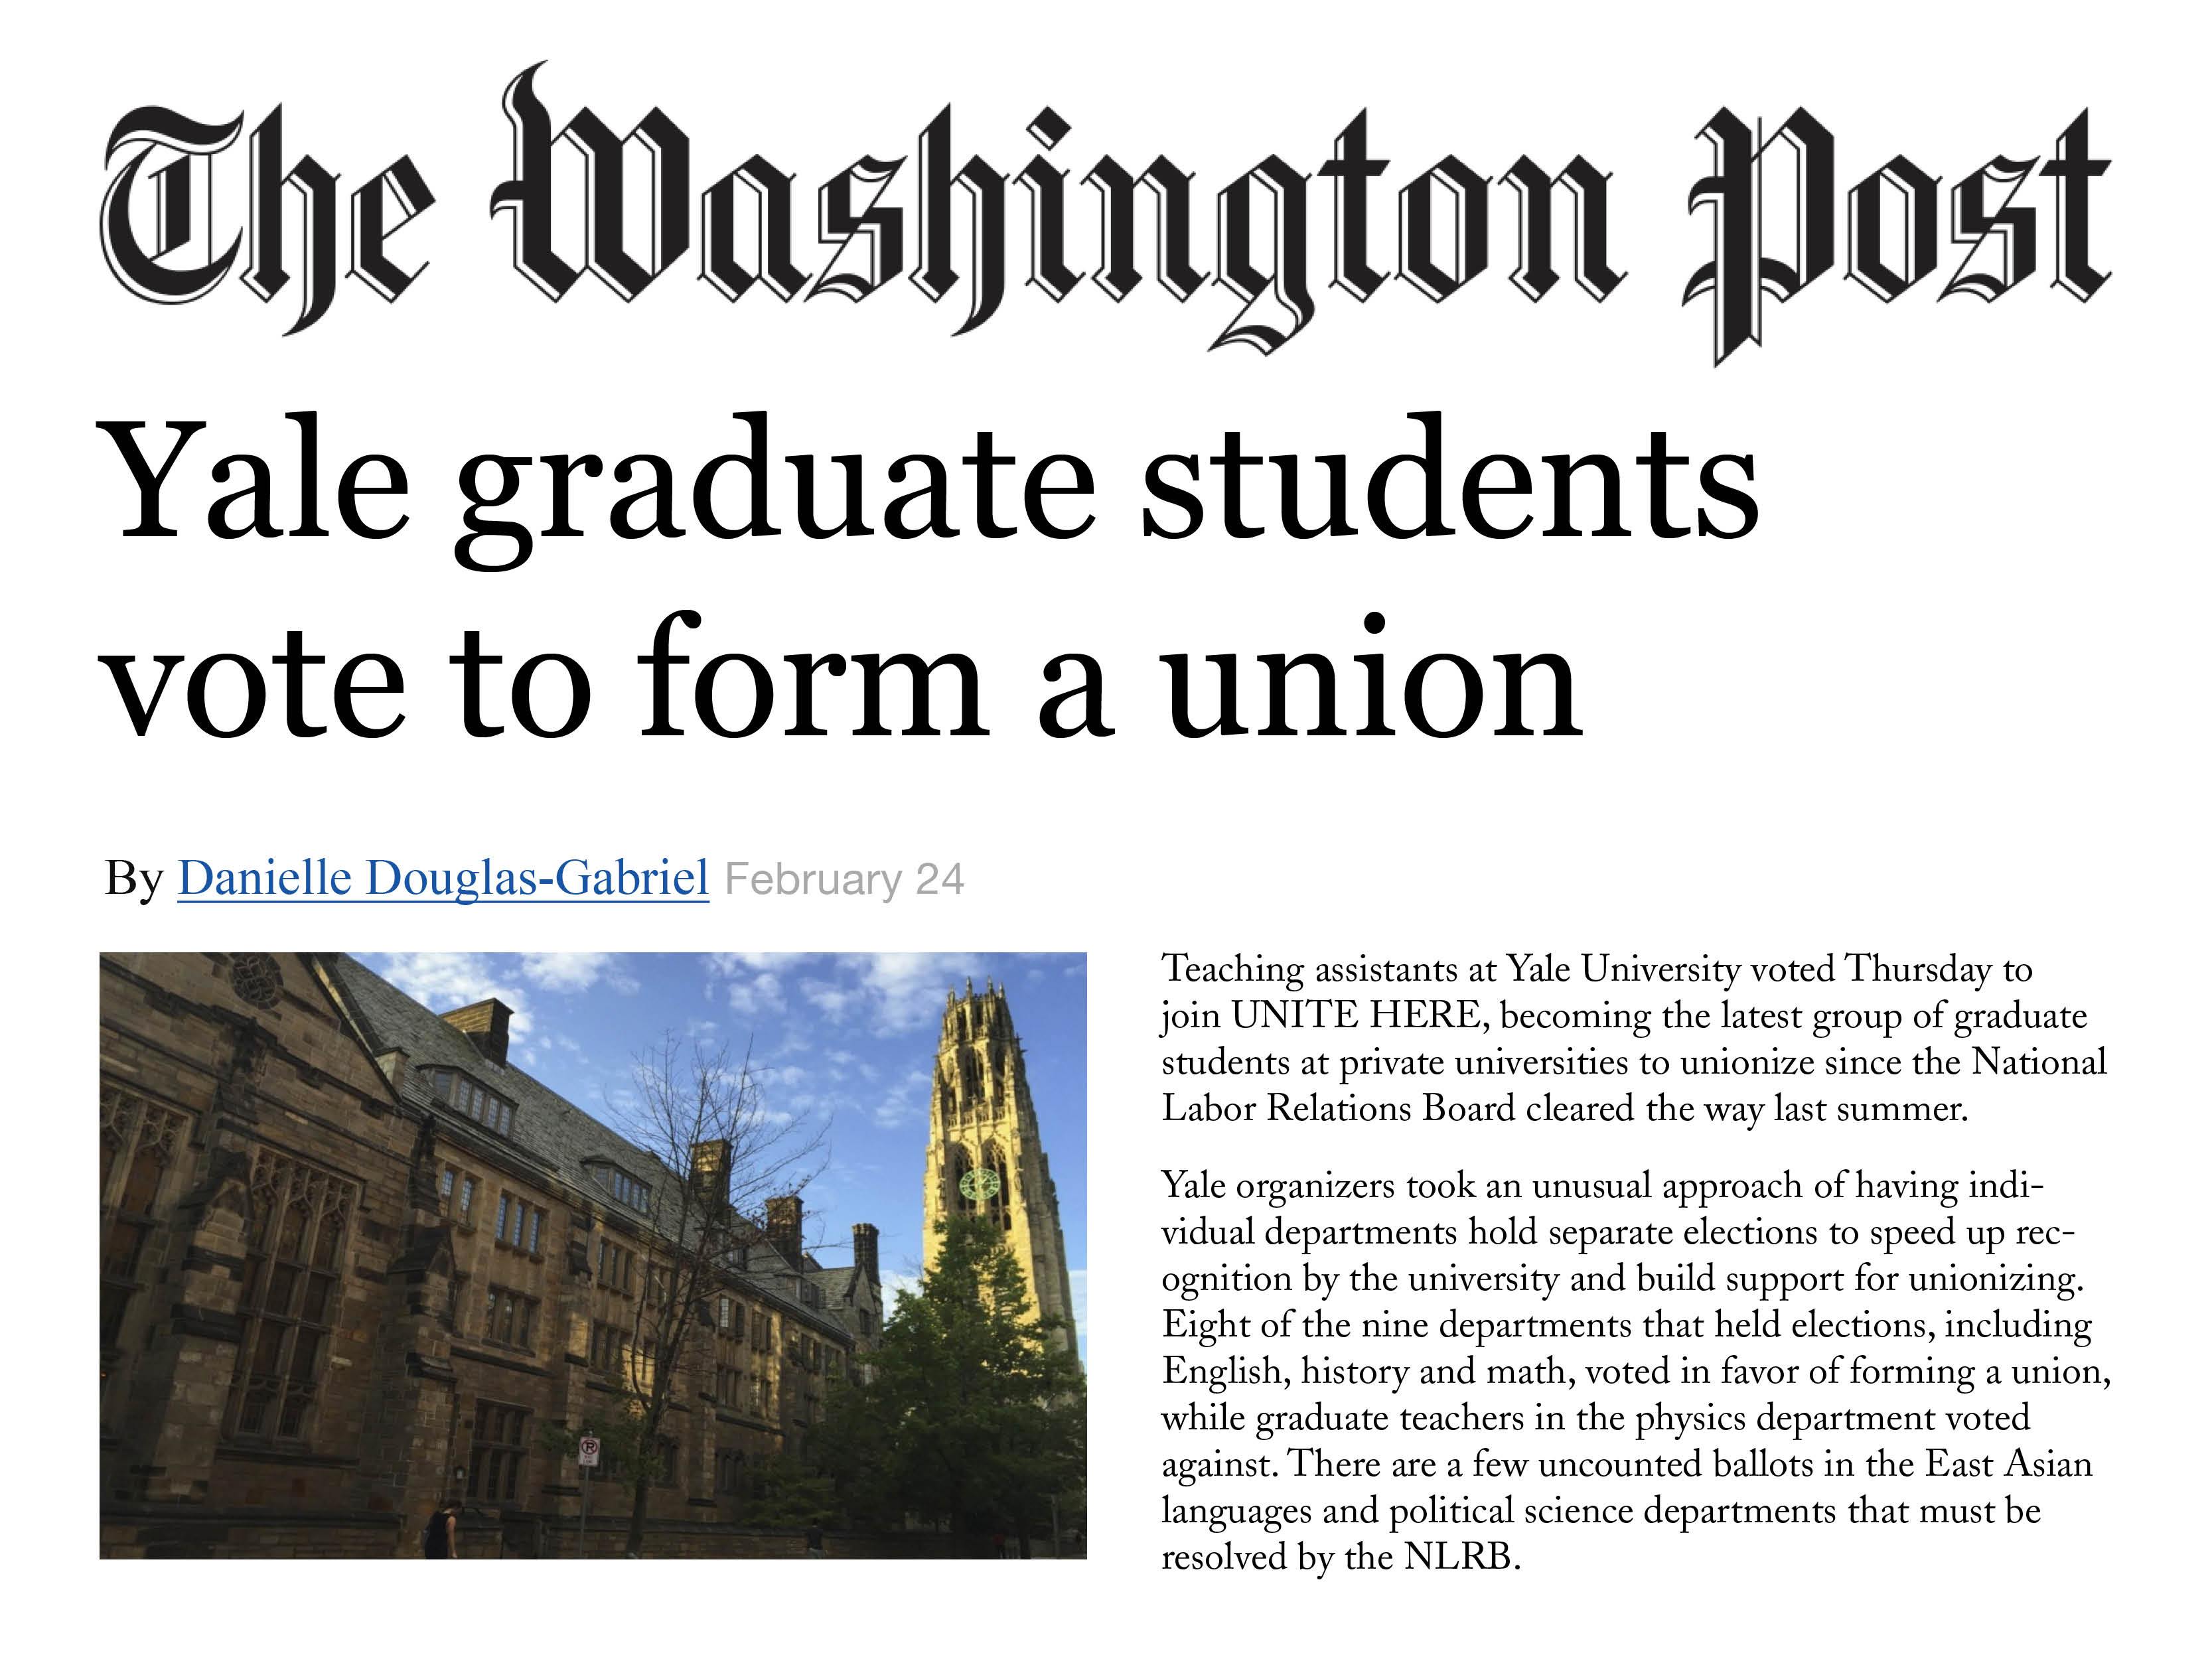 Washington Post - Yale graduate students vote to form a union